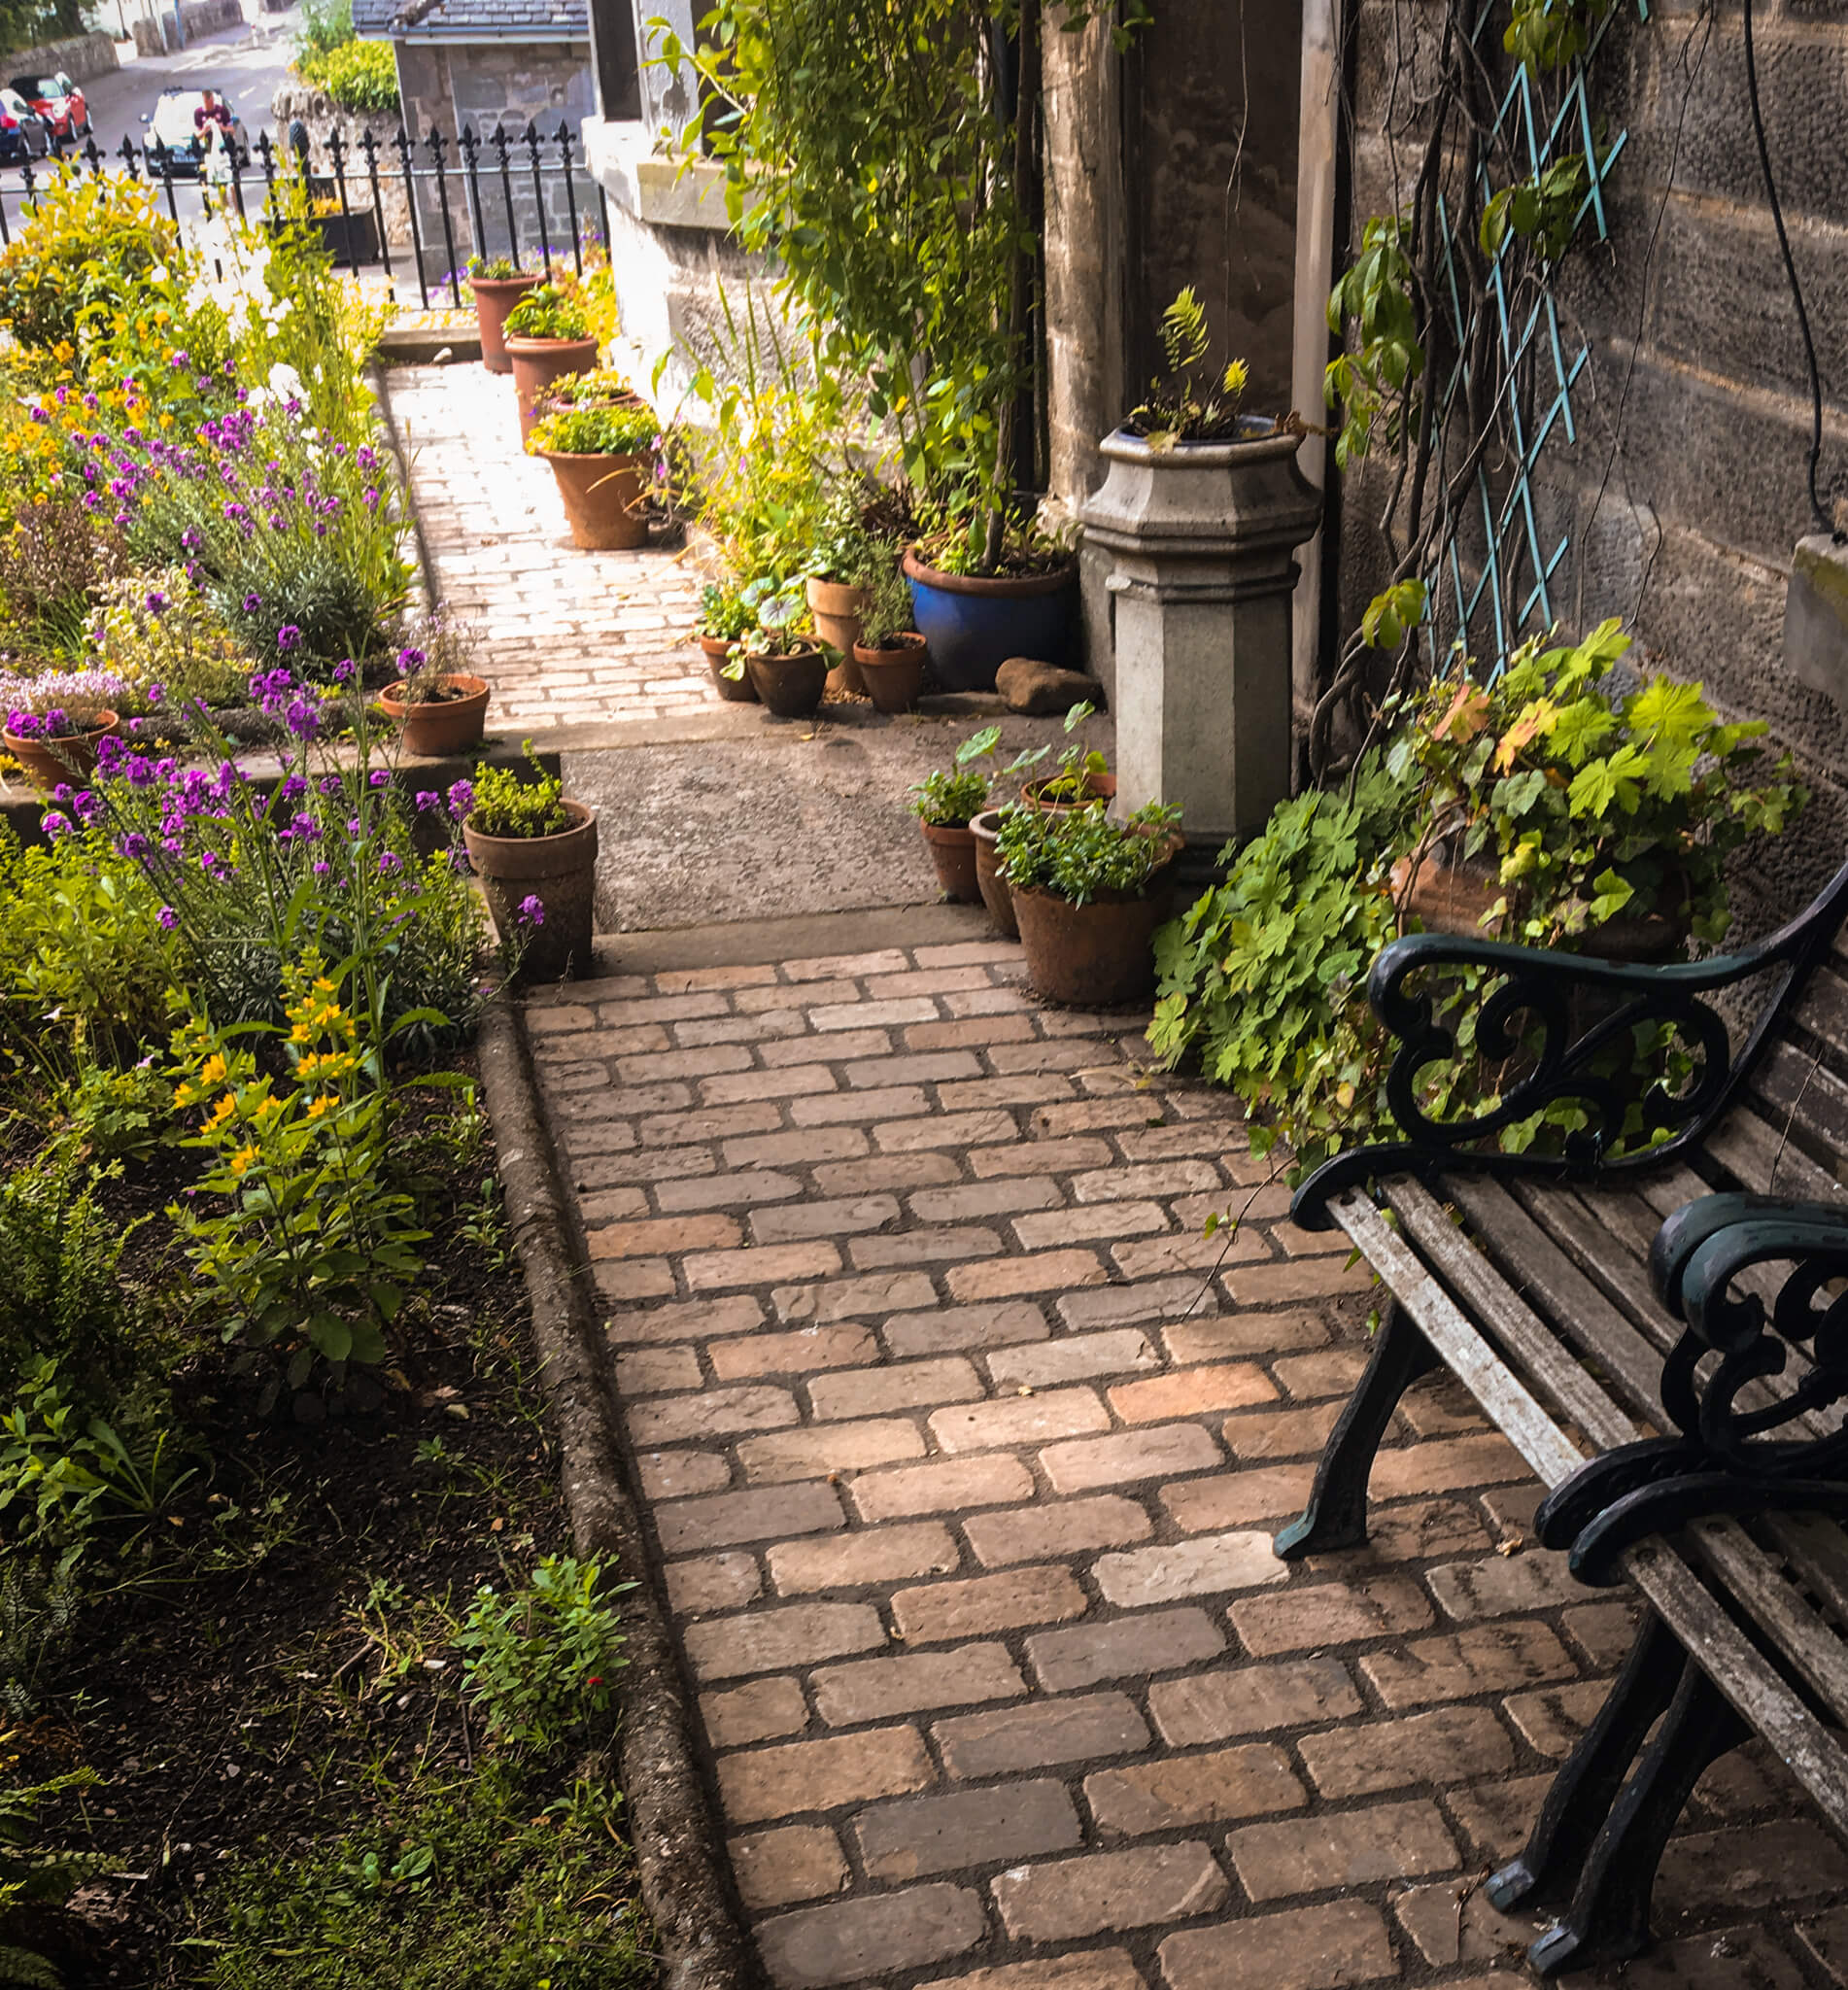 Stone driveway in a garden with a bench